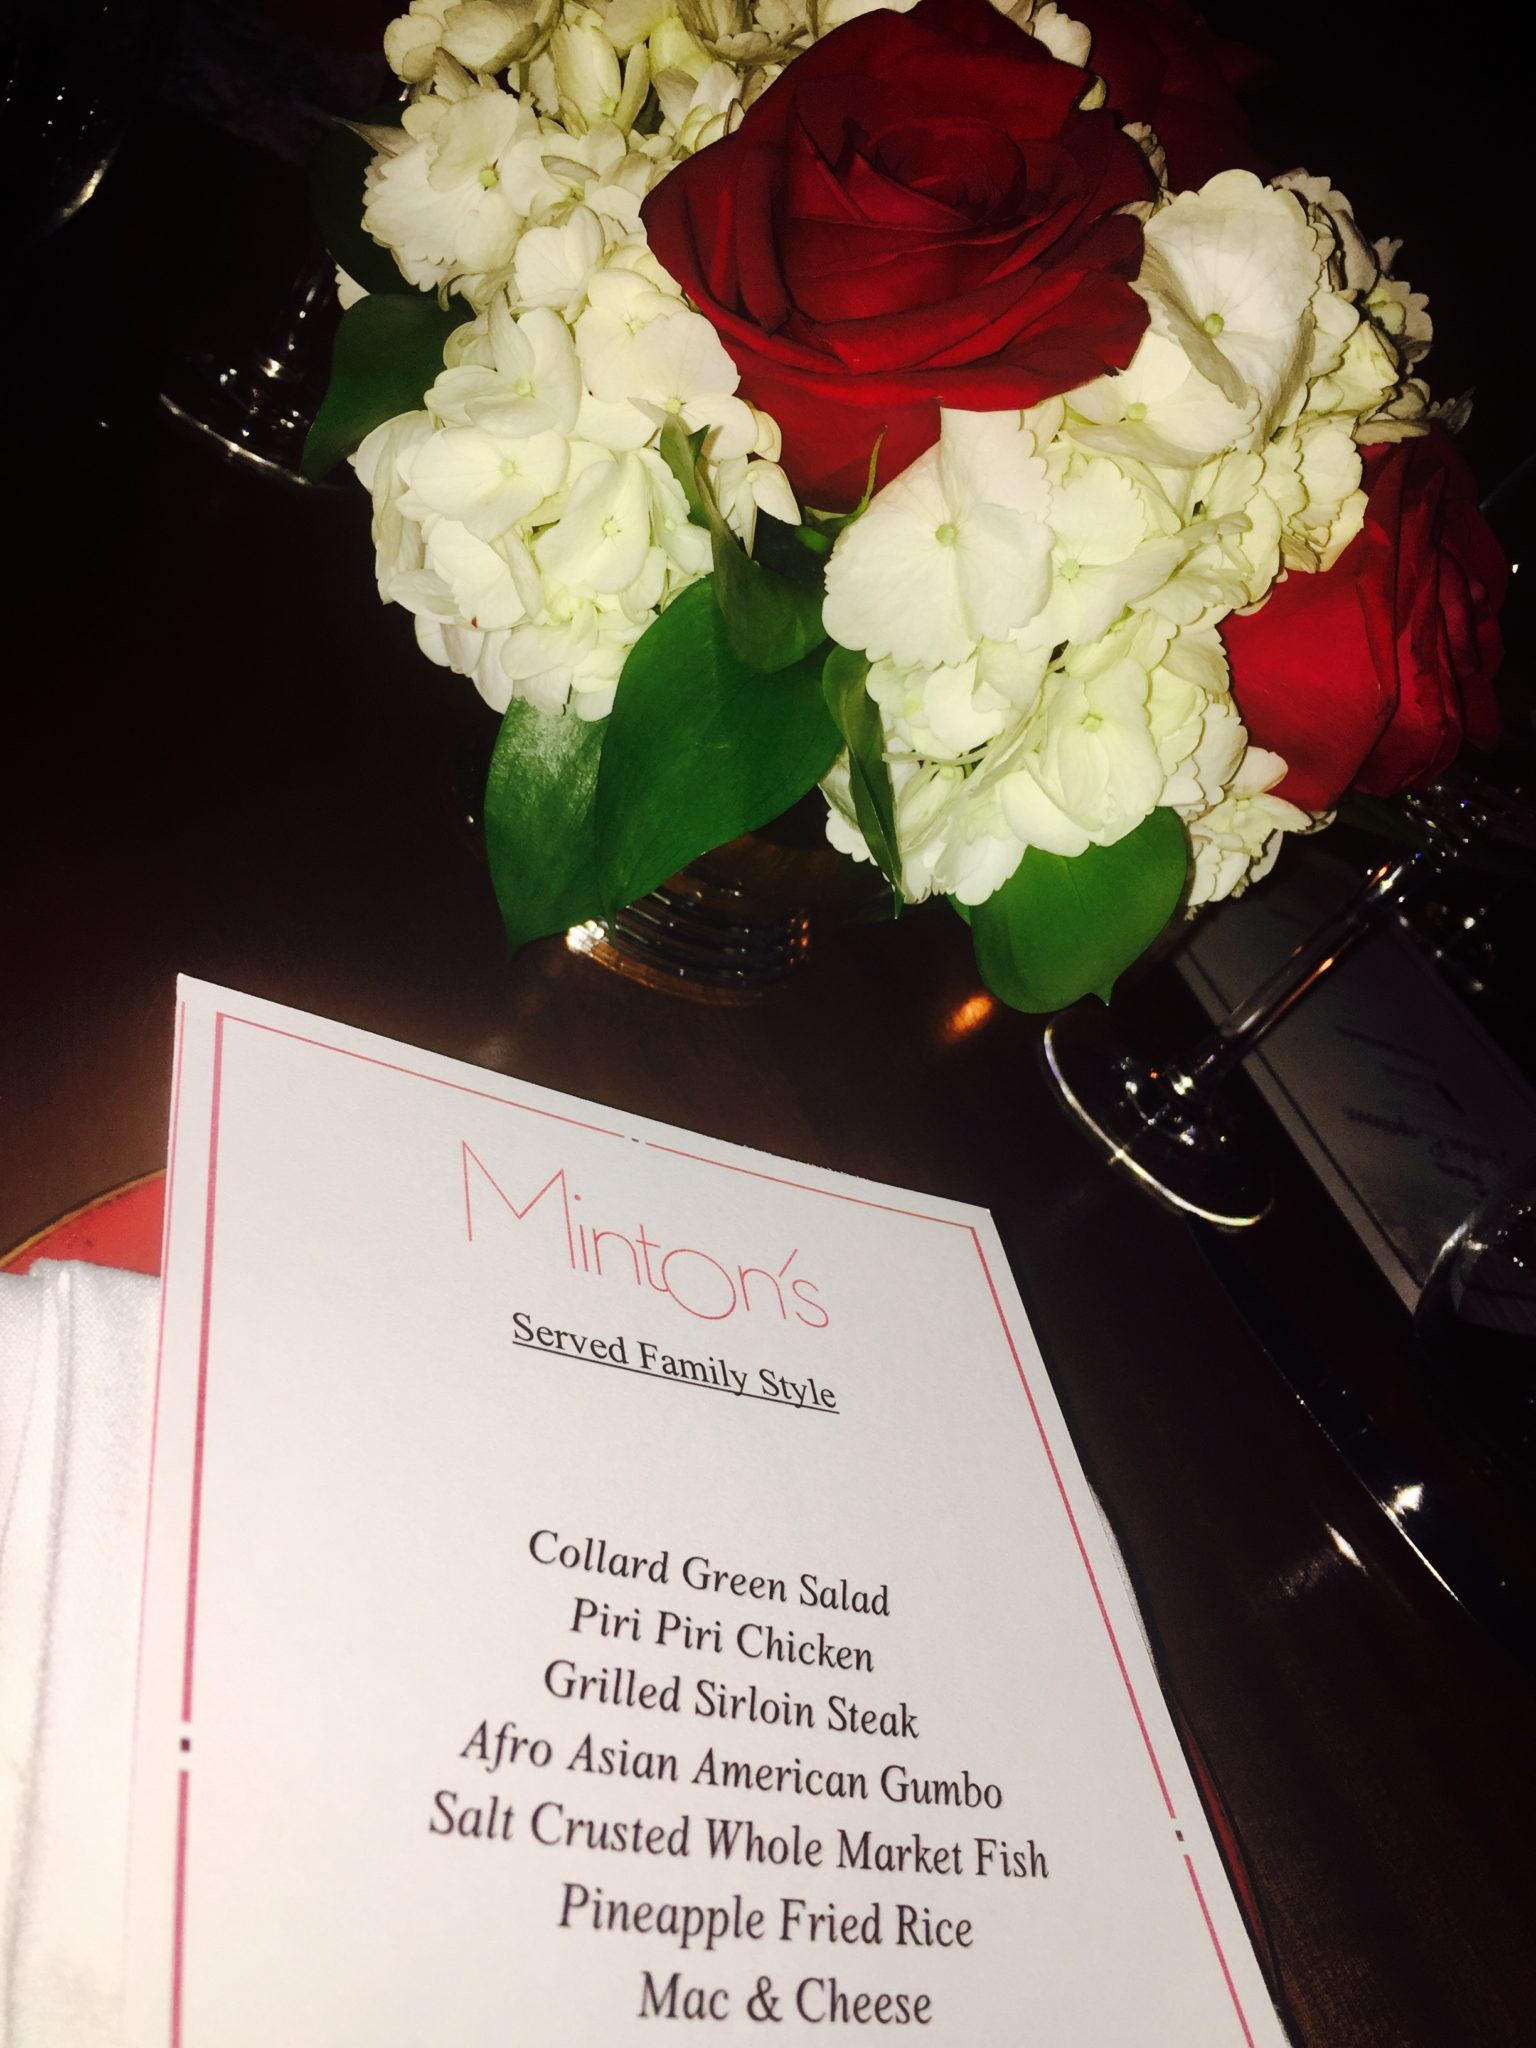 Dinner At Minton's In Harlem, New York